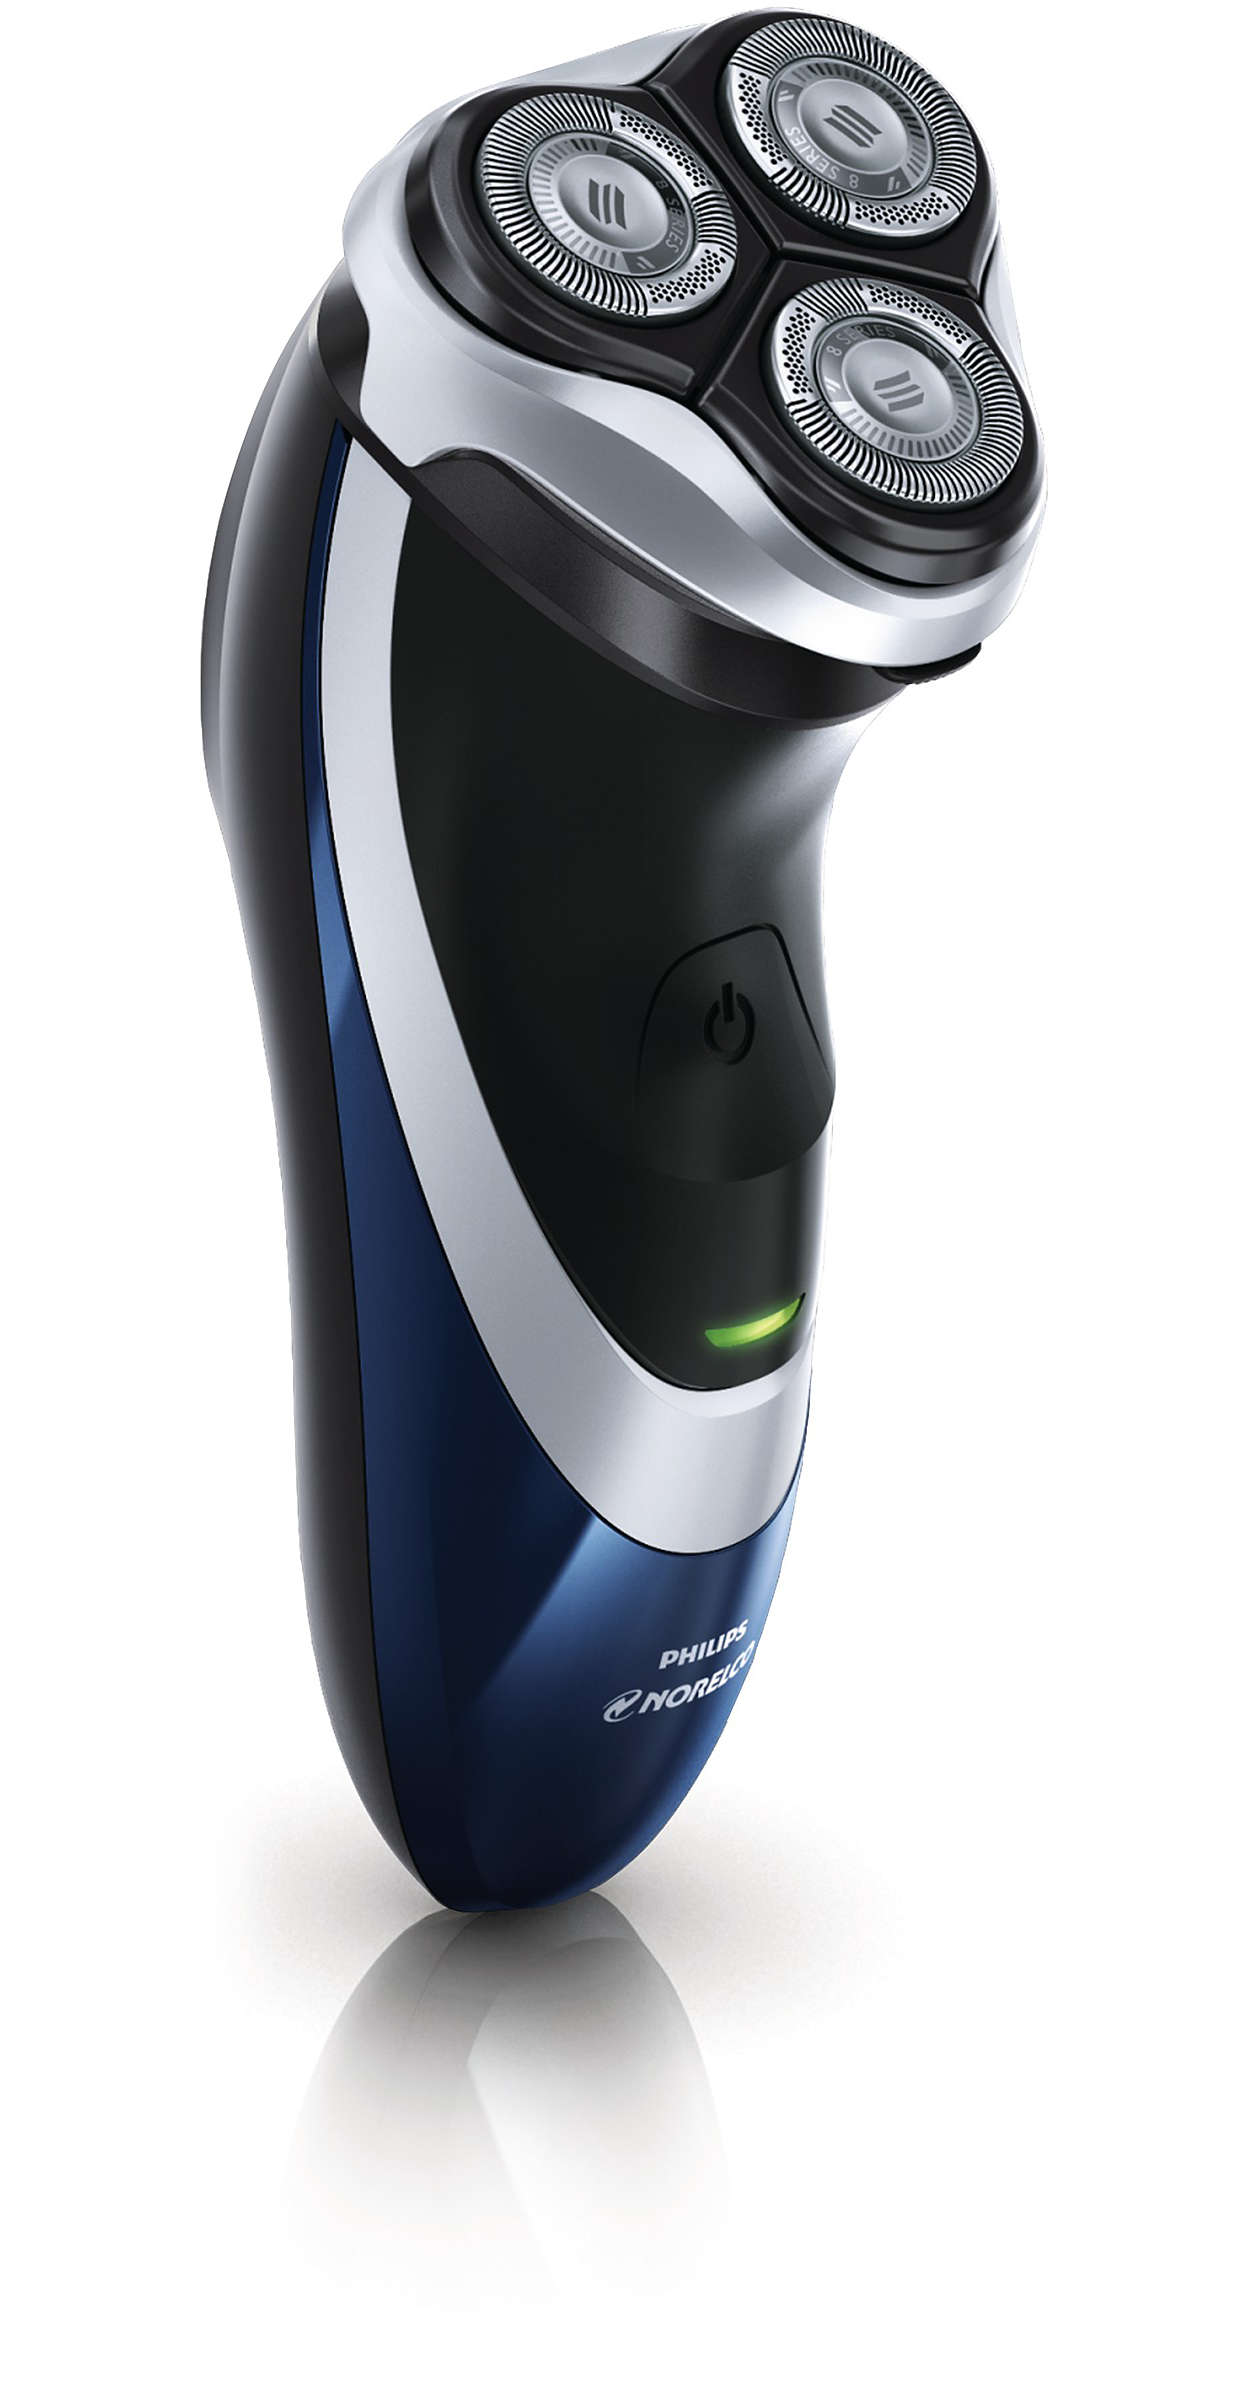 Series 3000 - Catches more hairs